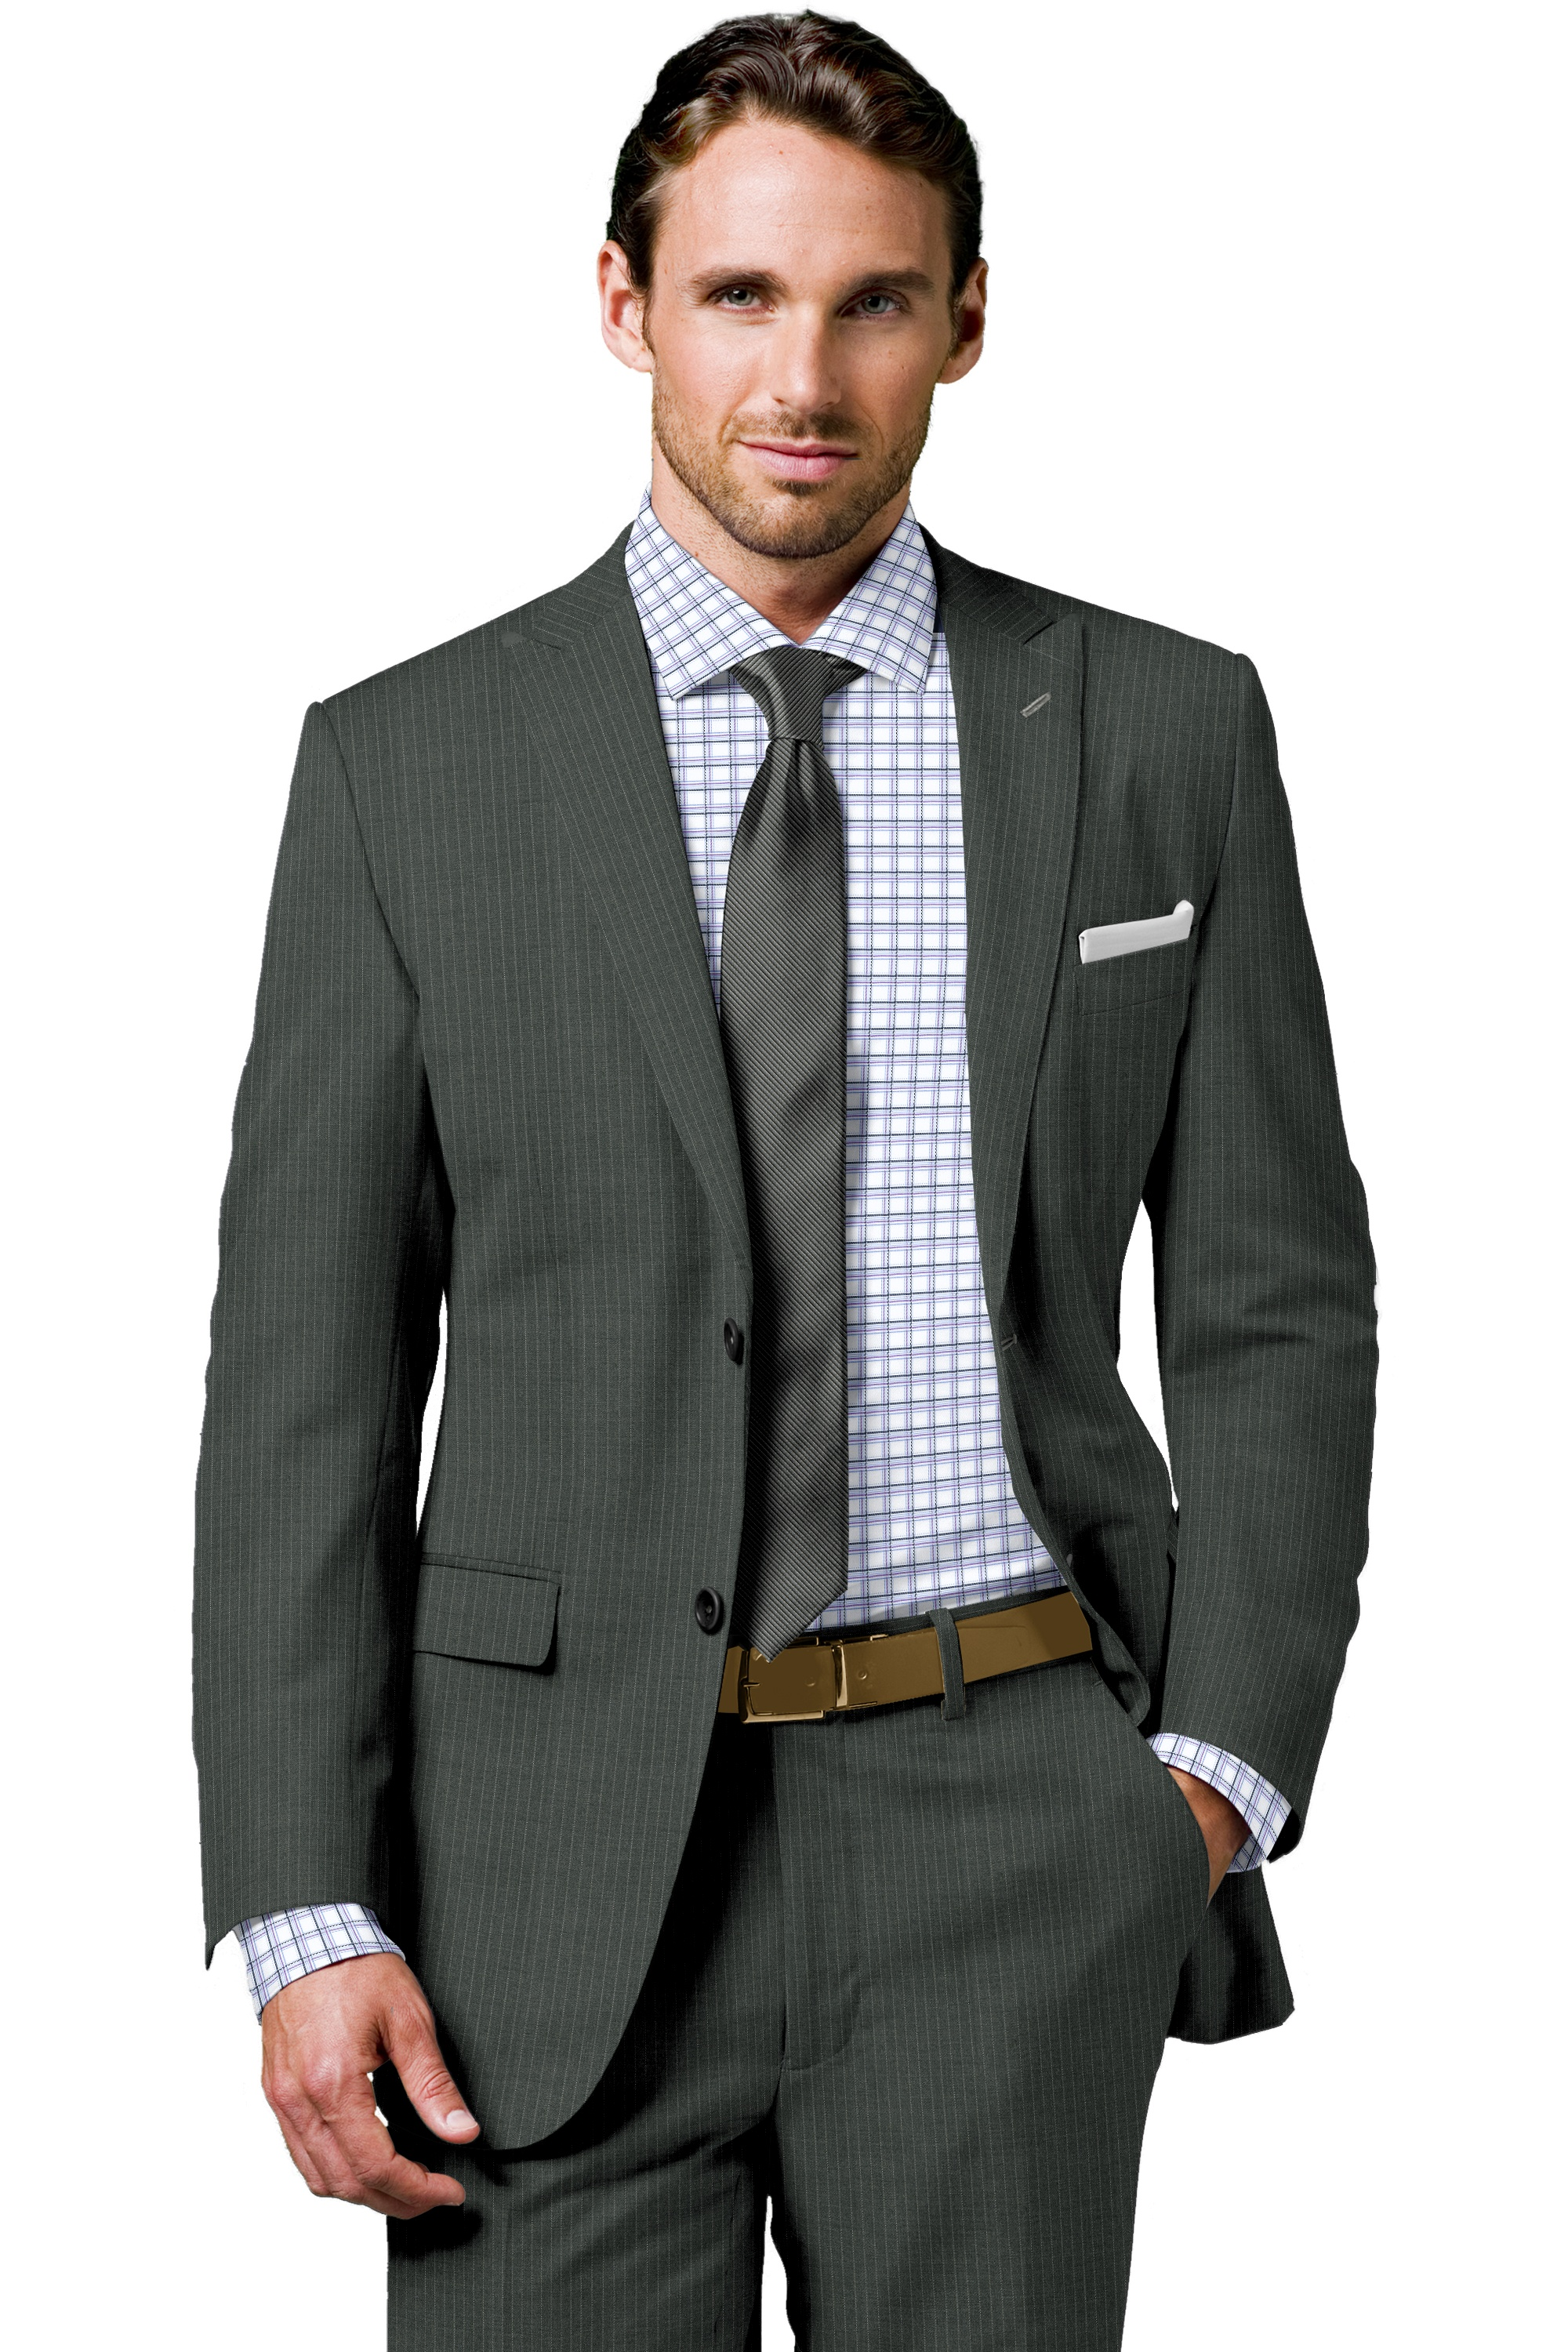 Local Clothier, AlphaSuit, Offers Affordable Custom Suits ...